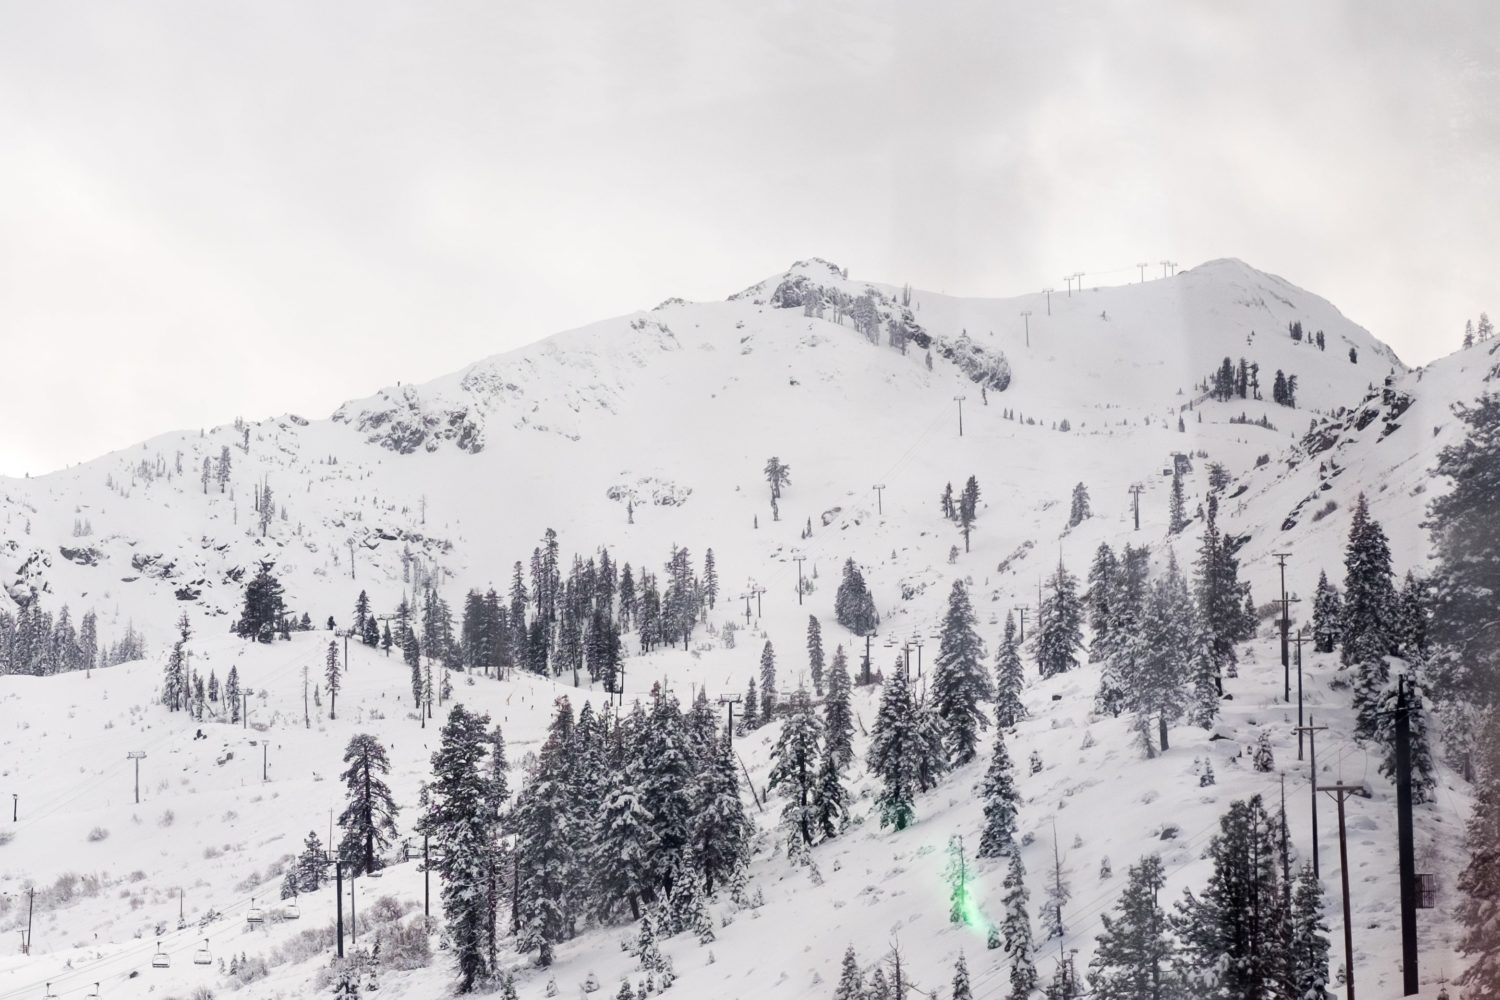 Headwall and mountain run are looking nice and filled in